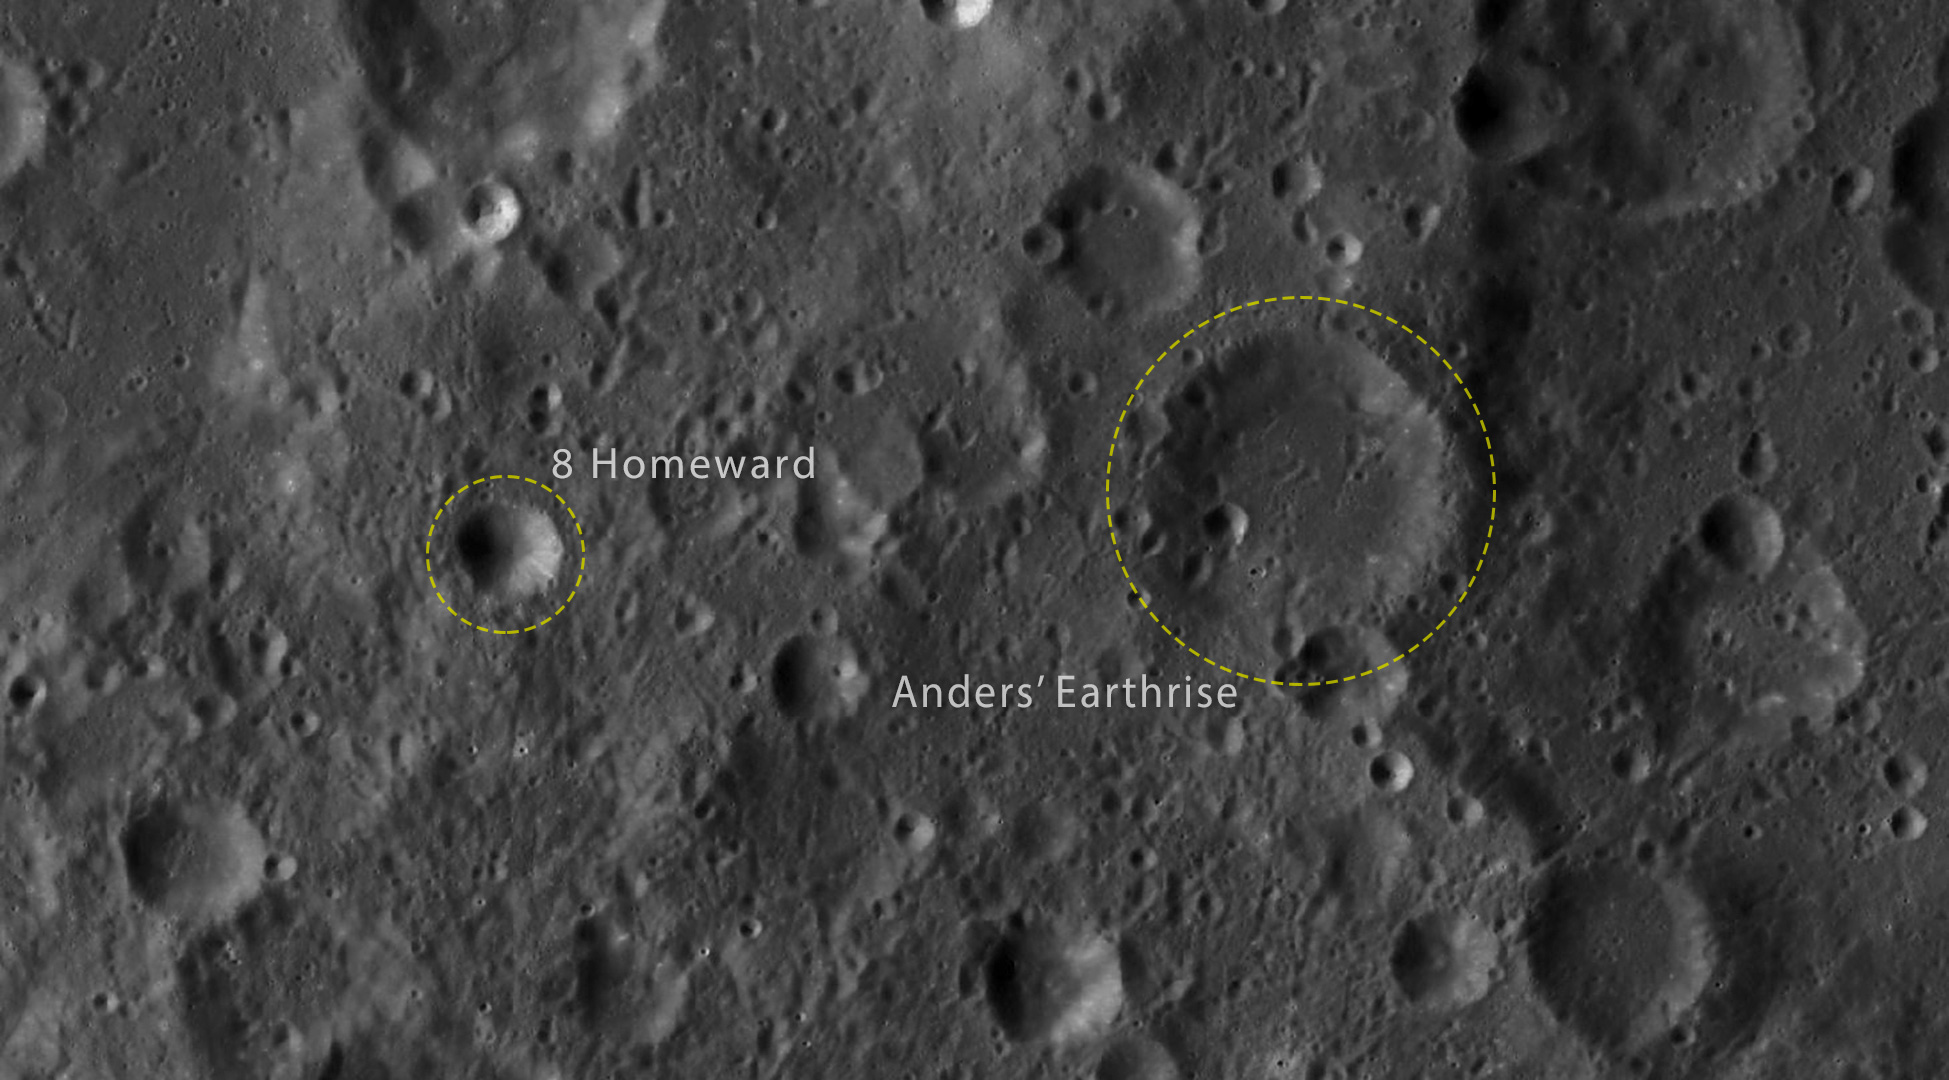 Orbital view of the Moon with new 8 Homeward and Ander's Earthrise highlighted and labeled.